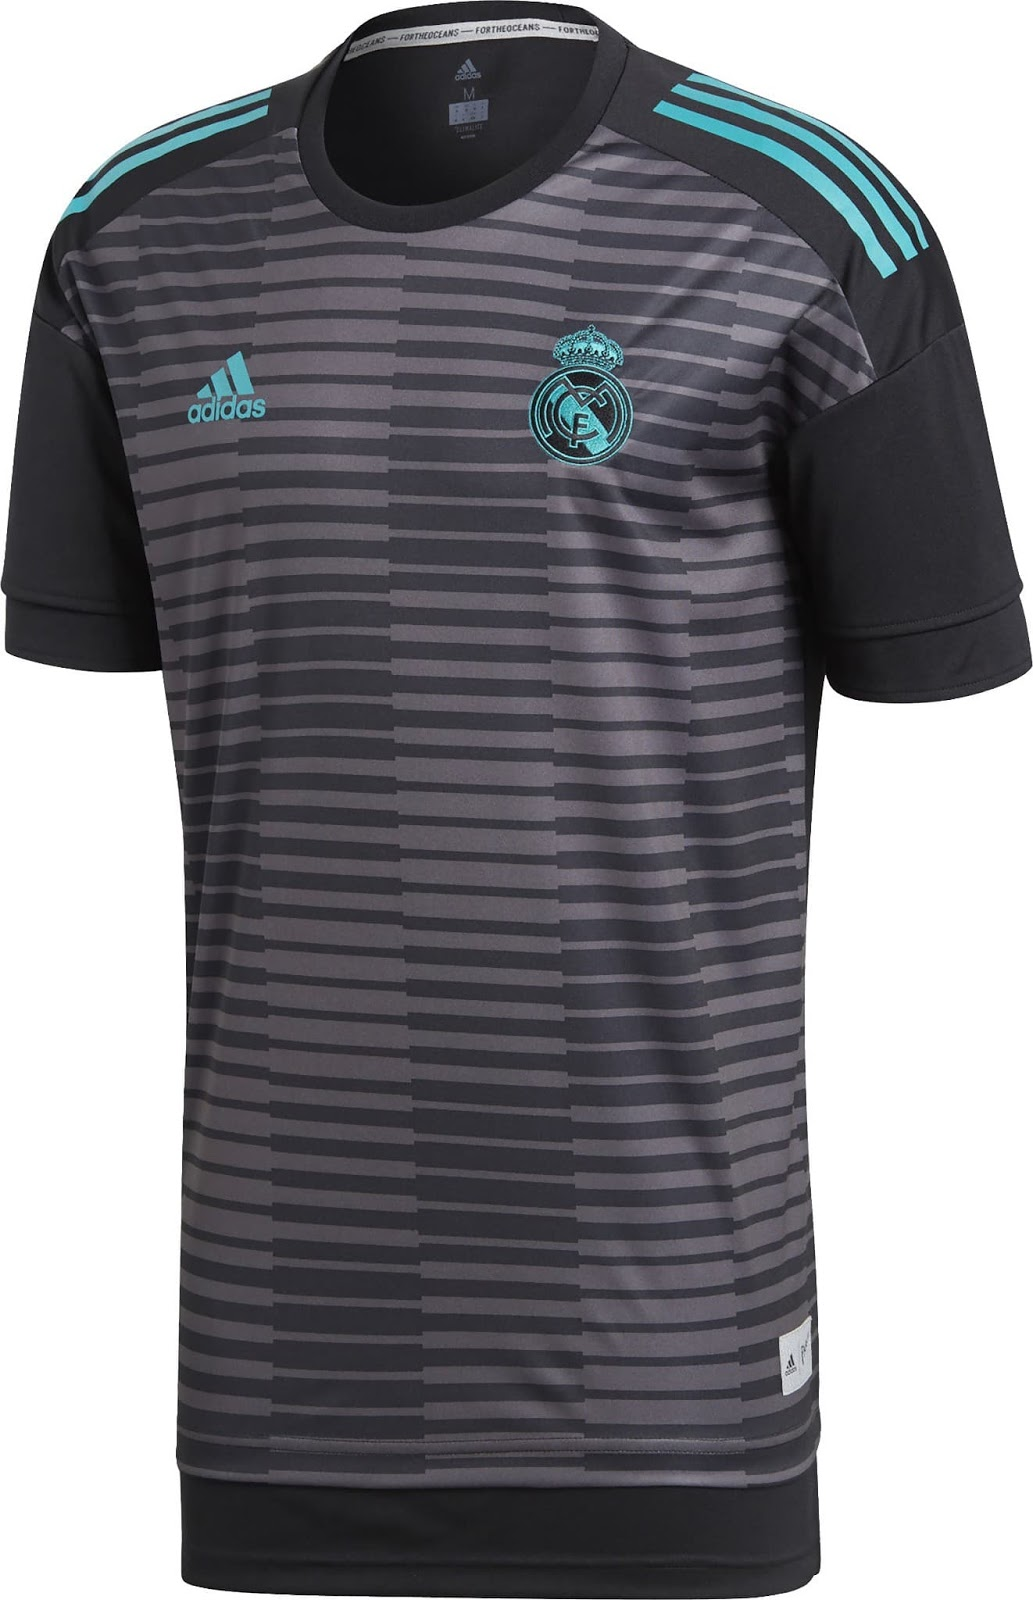 70b7128fe adidas 2018-2019 Real Madrid Pre-Match Training Football Soccer T-Shirt  Jersey Soccer Grey